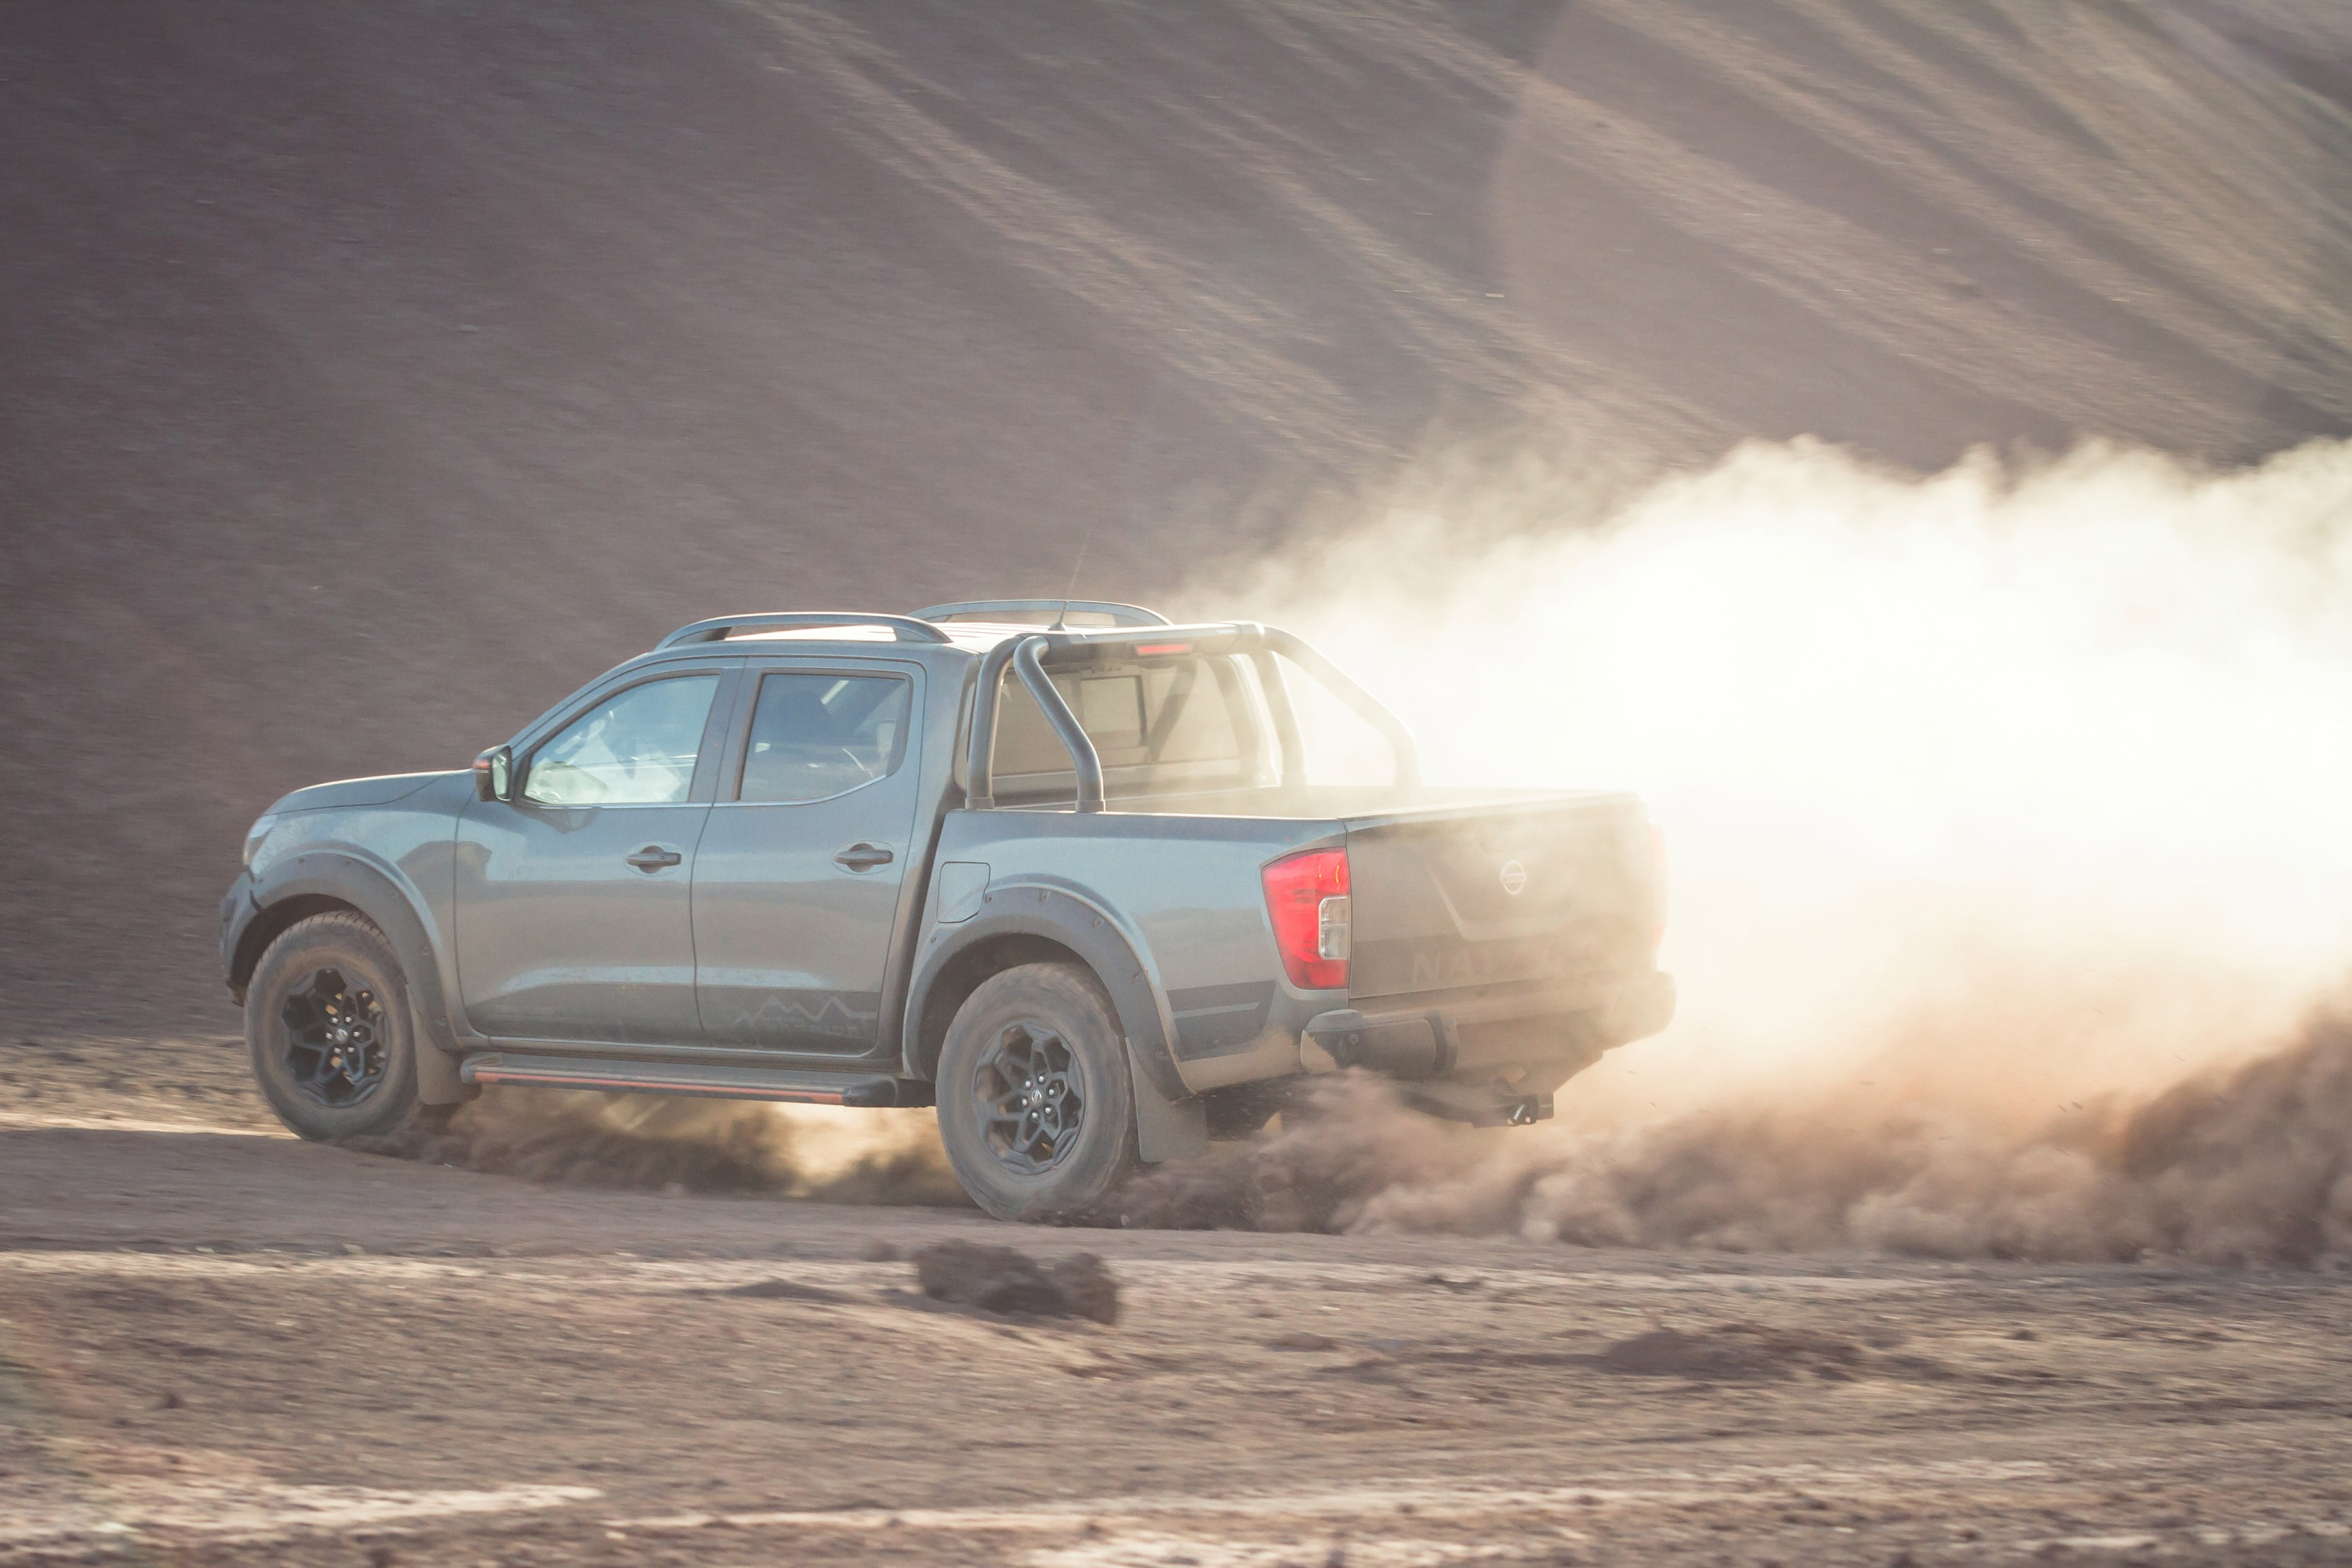 Nissan Navara N-TREK Warrior 15 driving on dirt